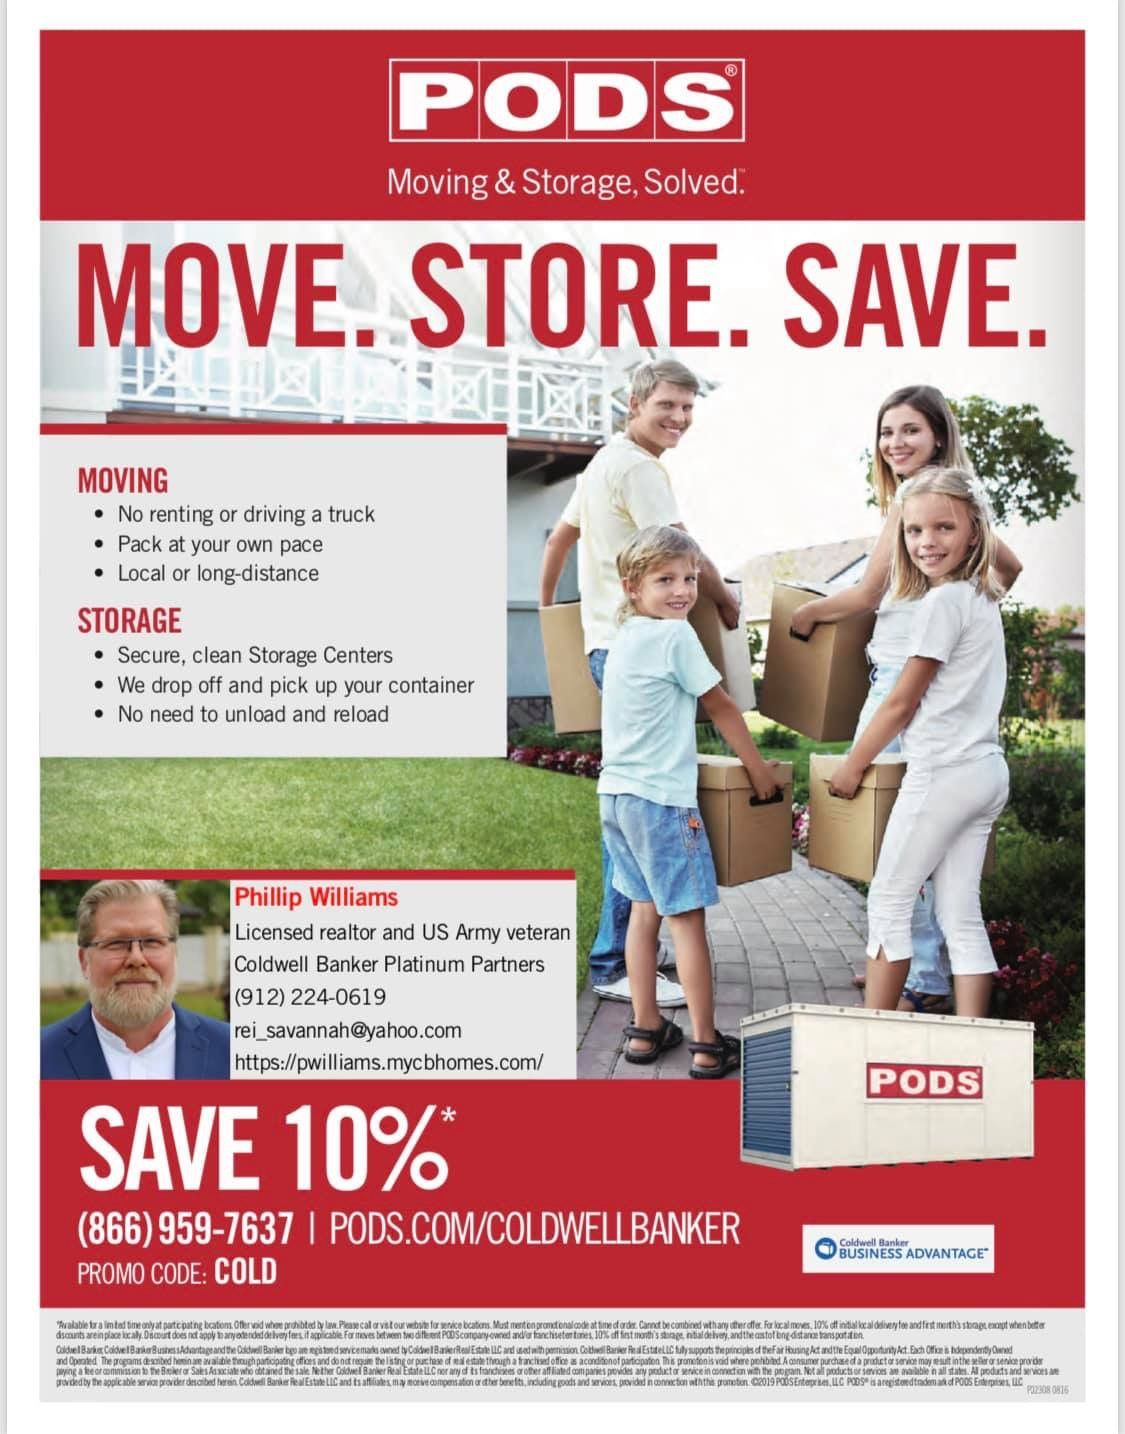 Moving Discount Pods Moving Real Estate Tips Pods Moving And Storage